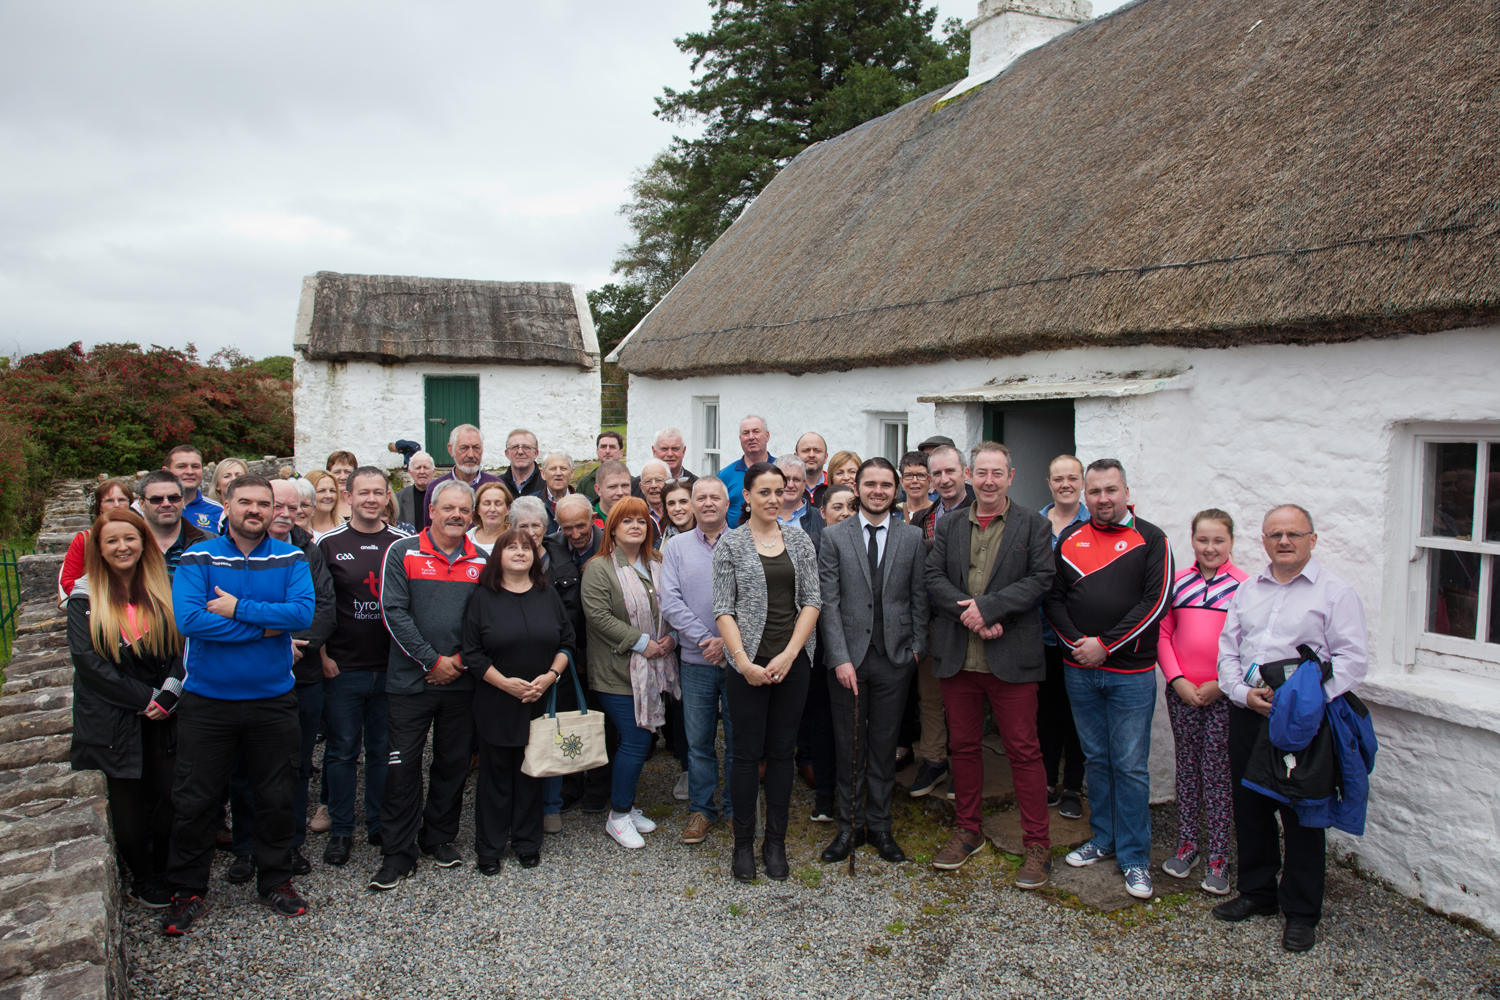 Tyrone tour group